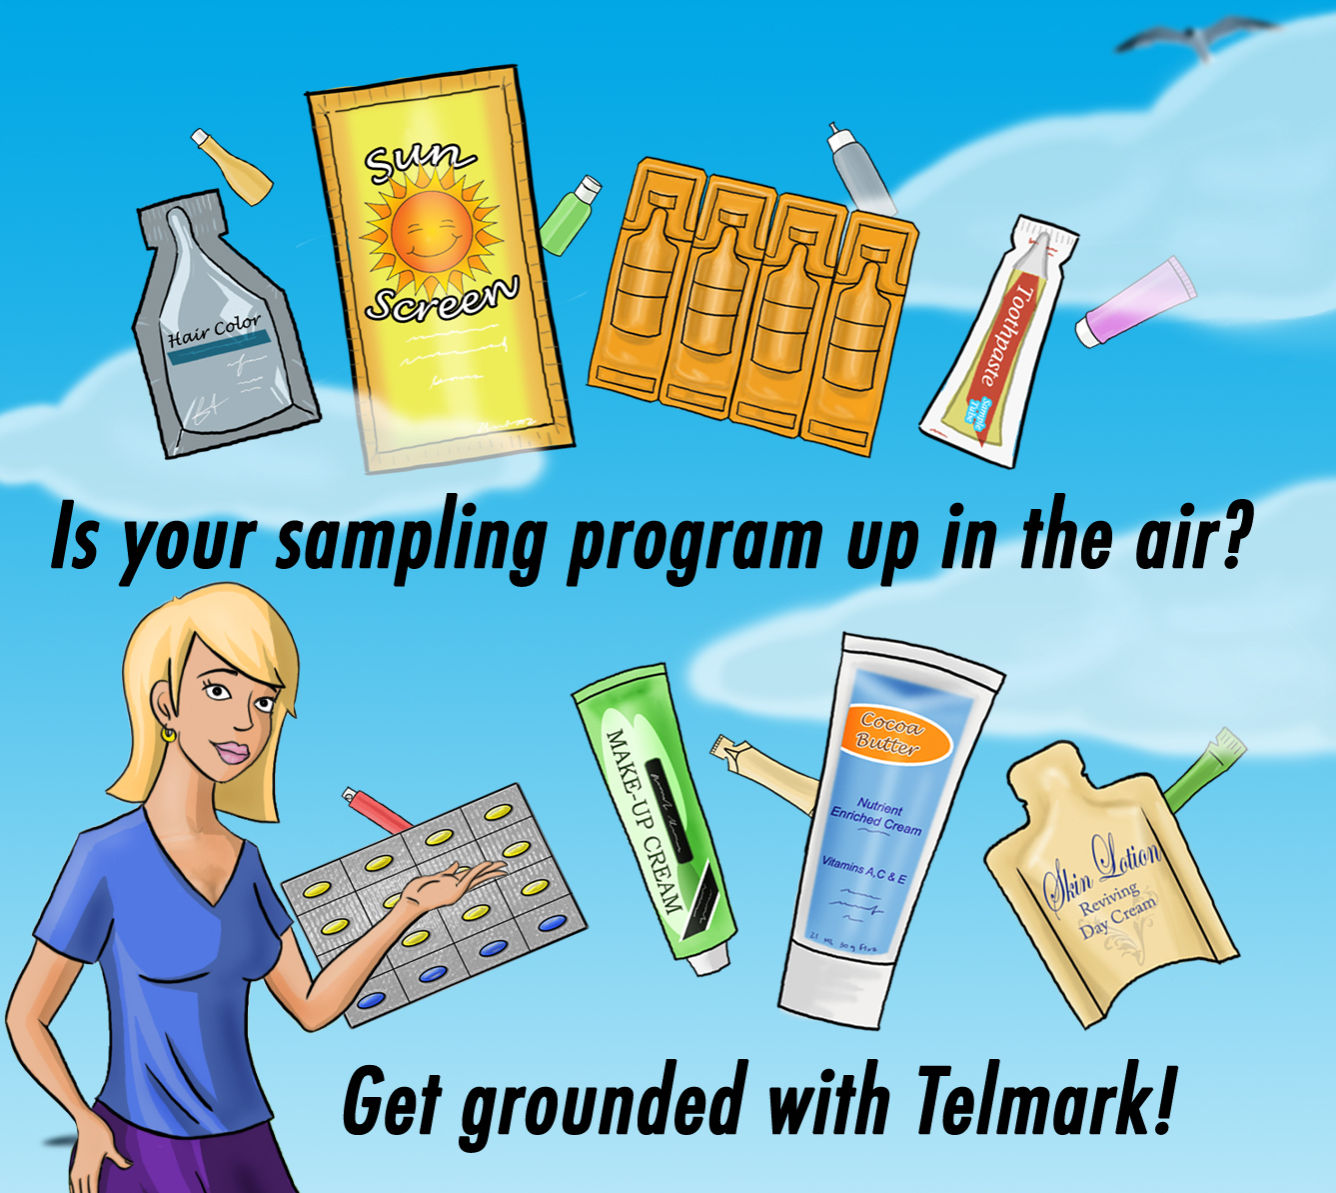 Get Grounded with Telmark